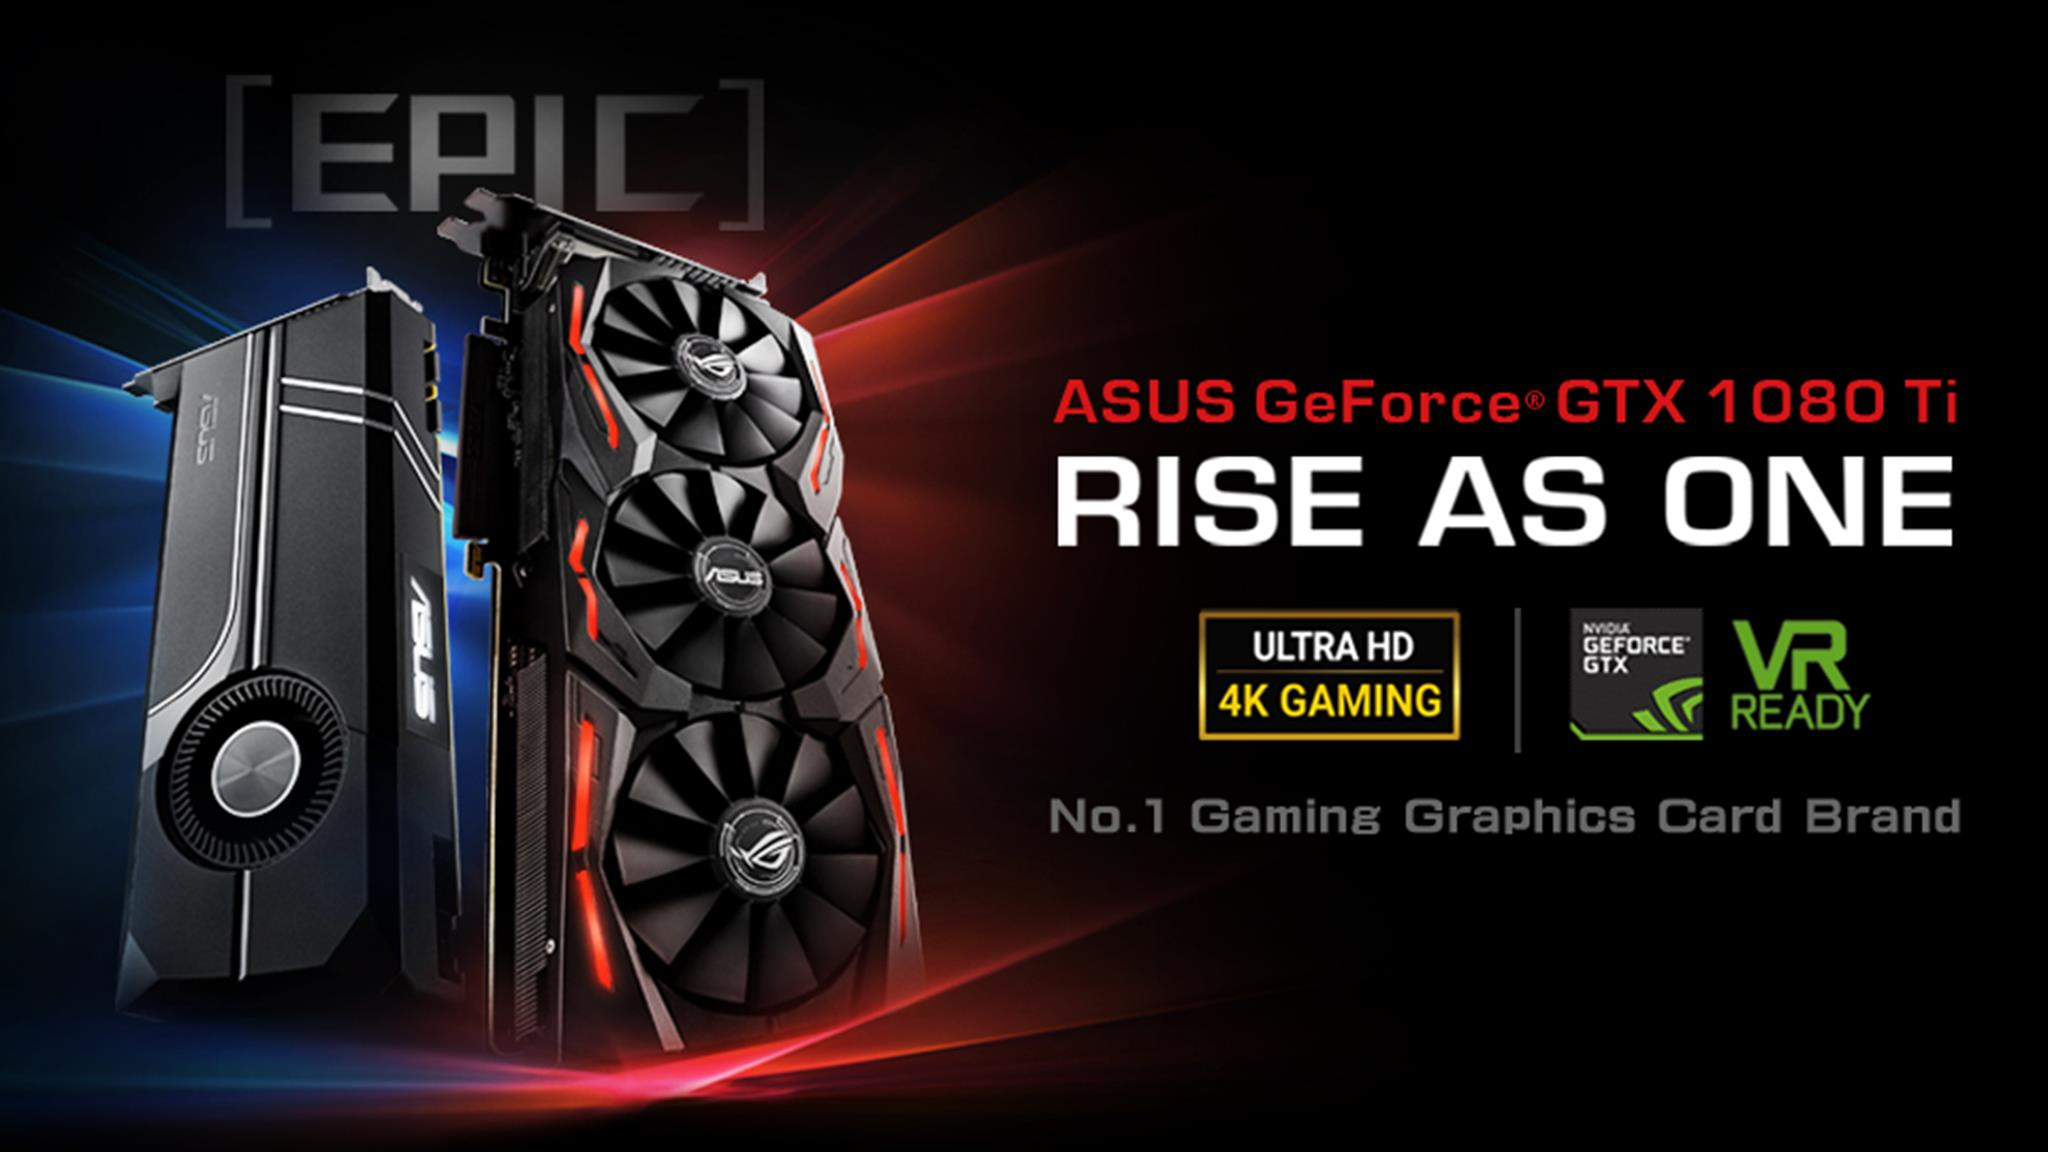 Asus Announces Rog Strix Geforce Gtx 1080 Ti And Turbo